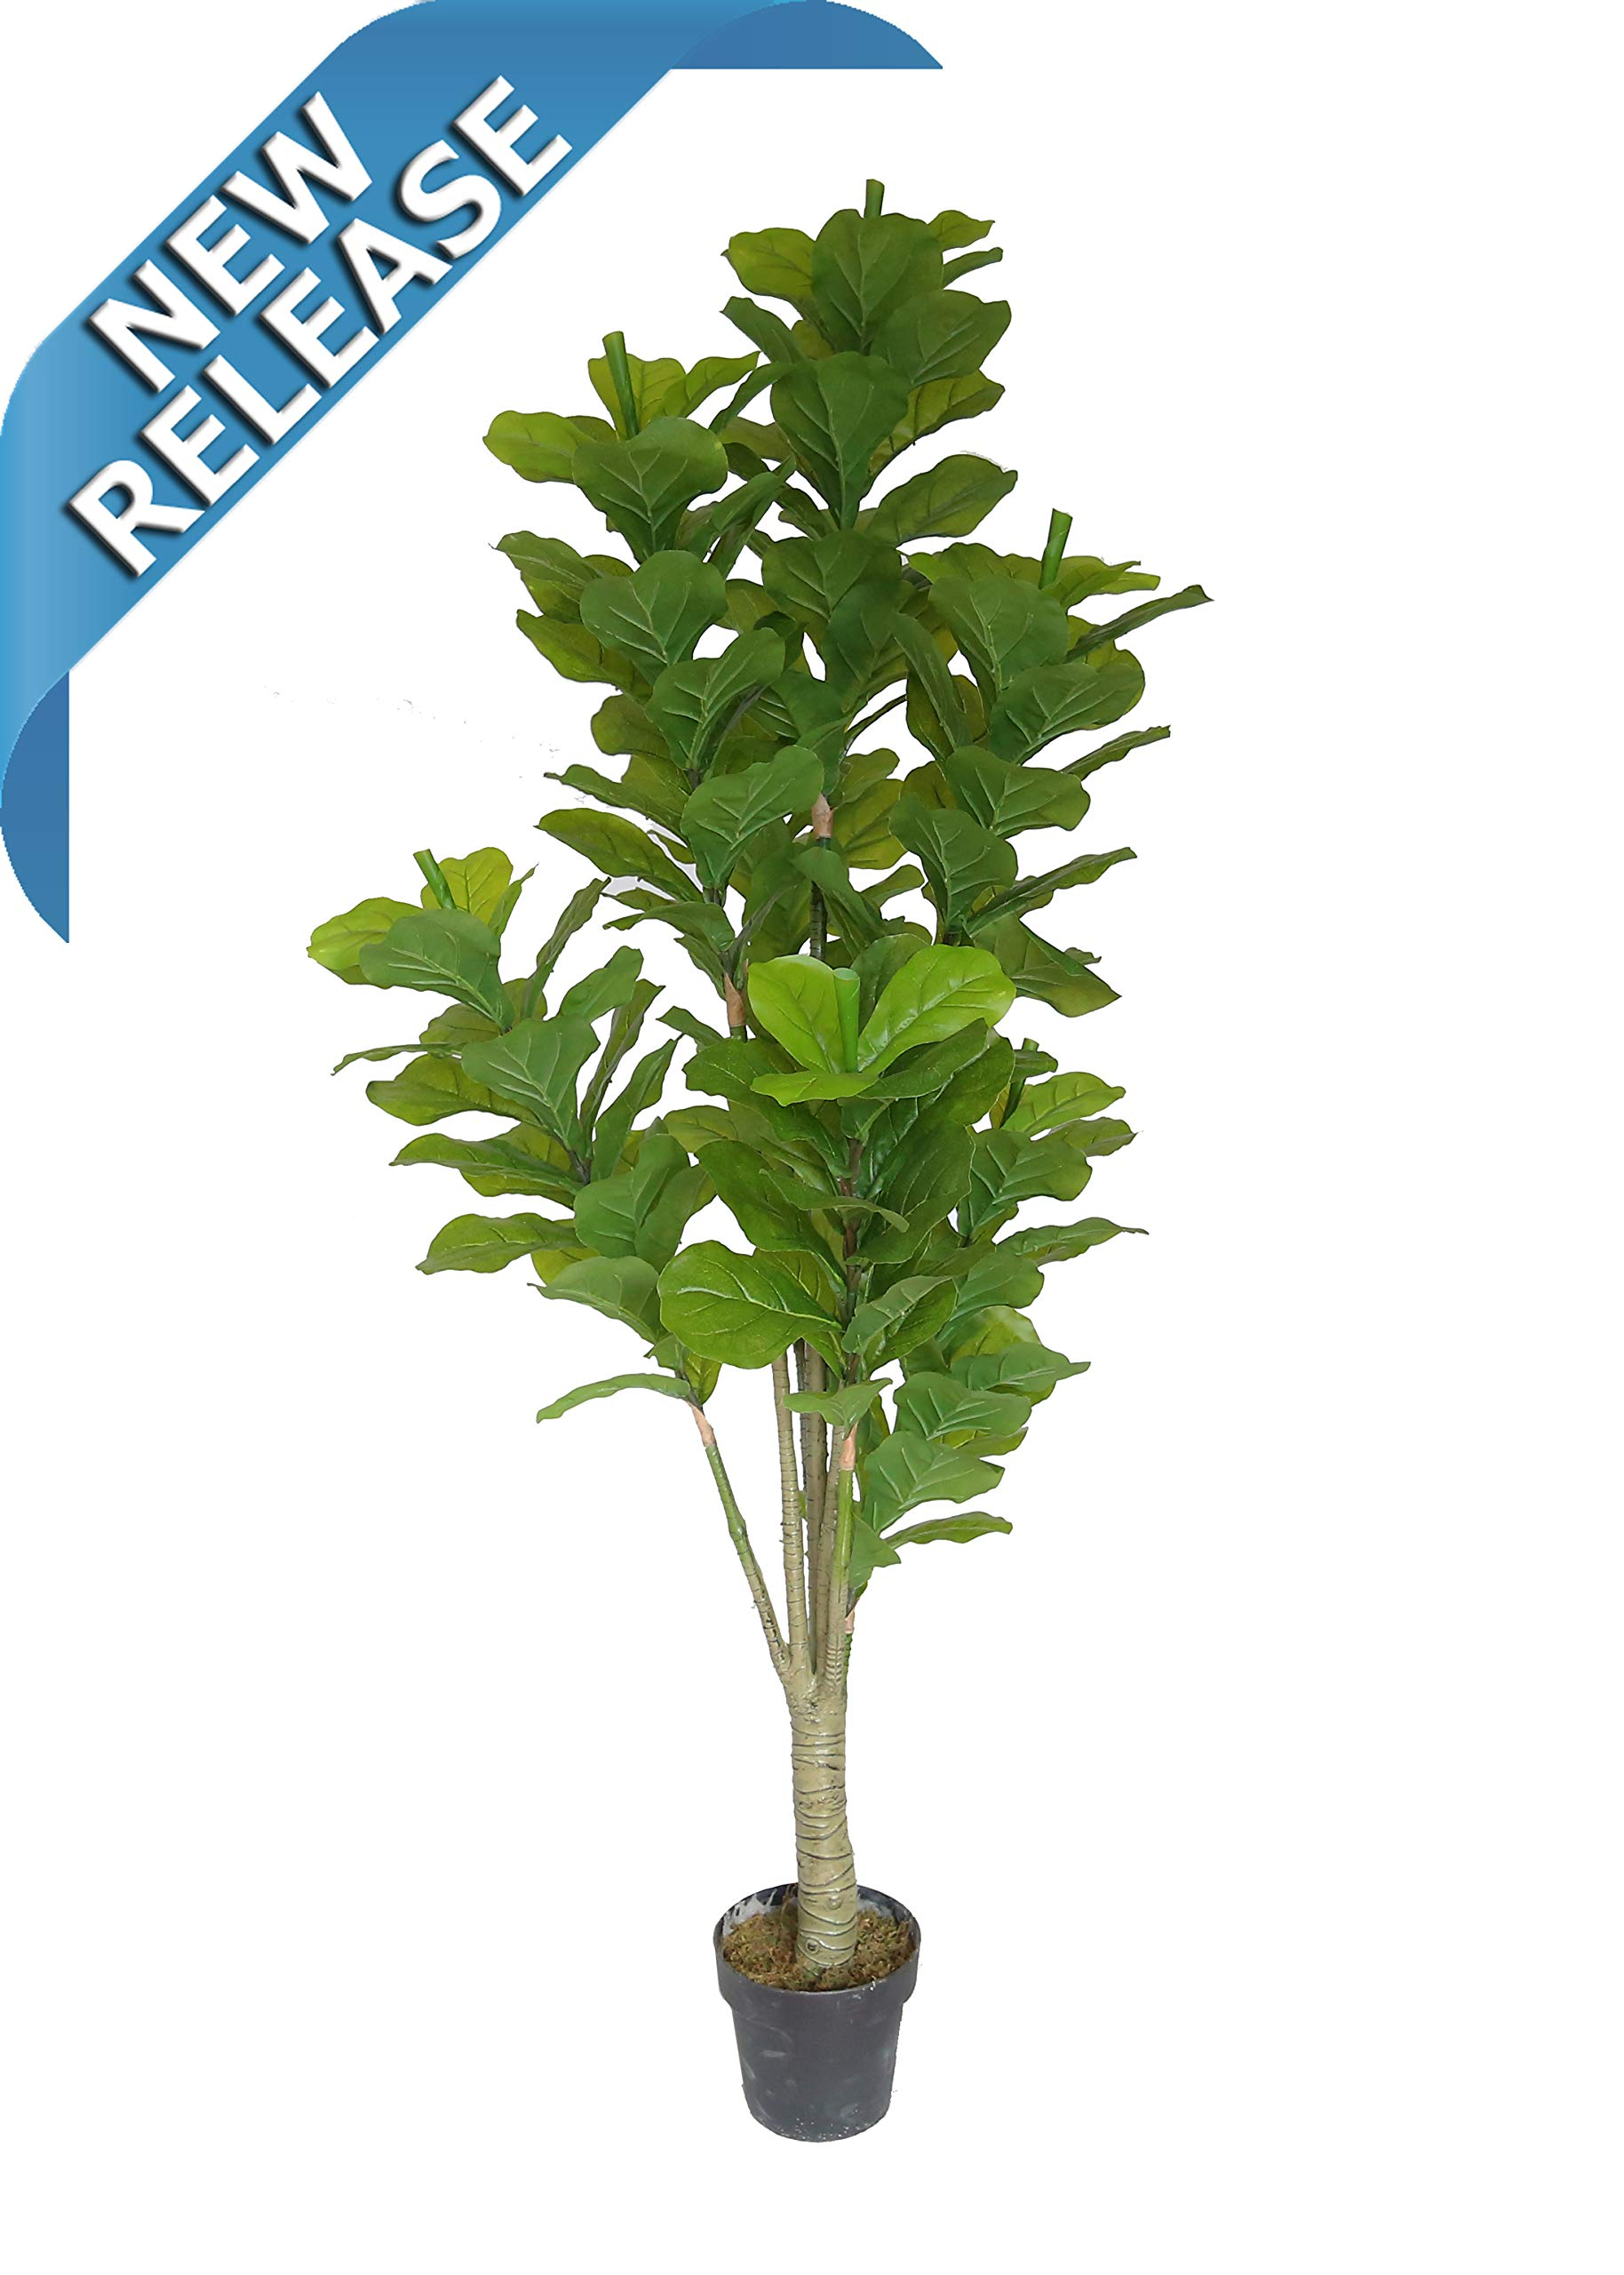 AMERIQUE Gorgeous & Dense 6' Fiddle Leaf Fig Tree Artificial Silk Plant with UV Protection, with Nursery Plastic Pot, Feel Real Technology, Super Quality, 6 Feet, Green by AMERIQUE